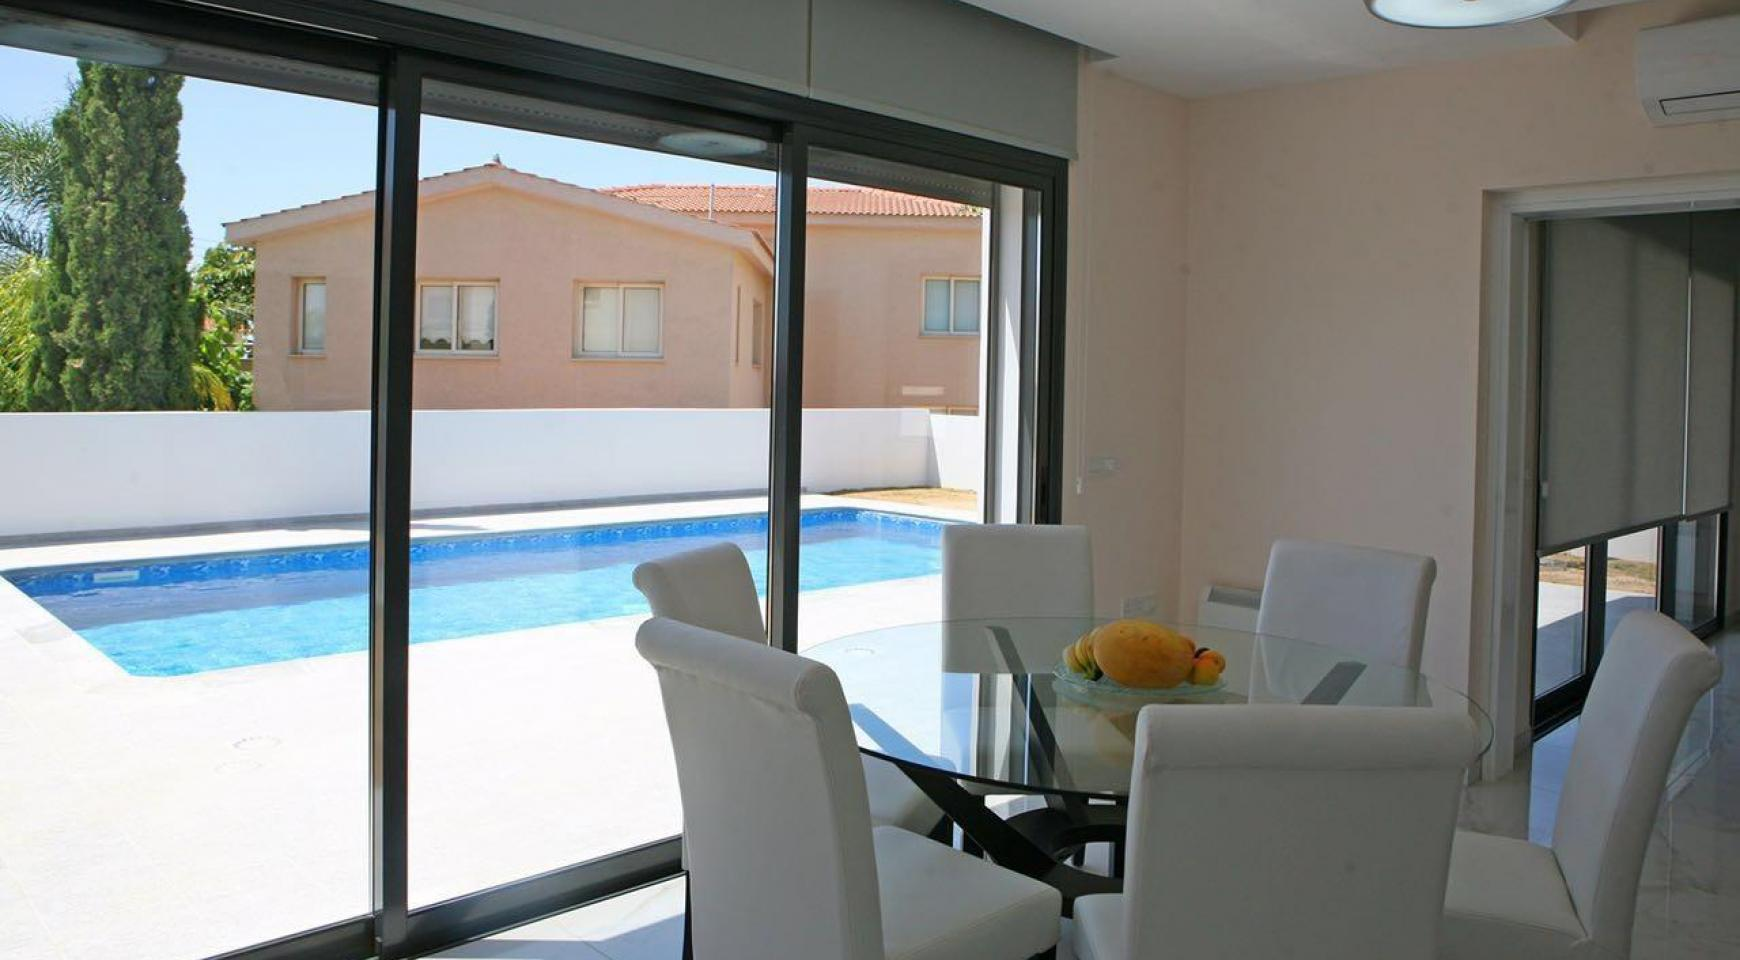 New Contemporary 3 Bedroom House in Central Location - 7